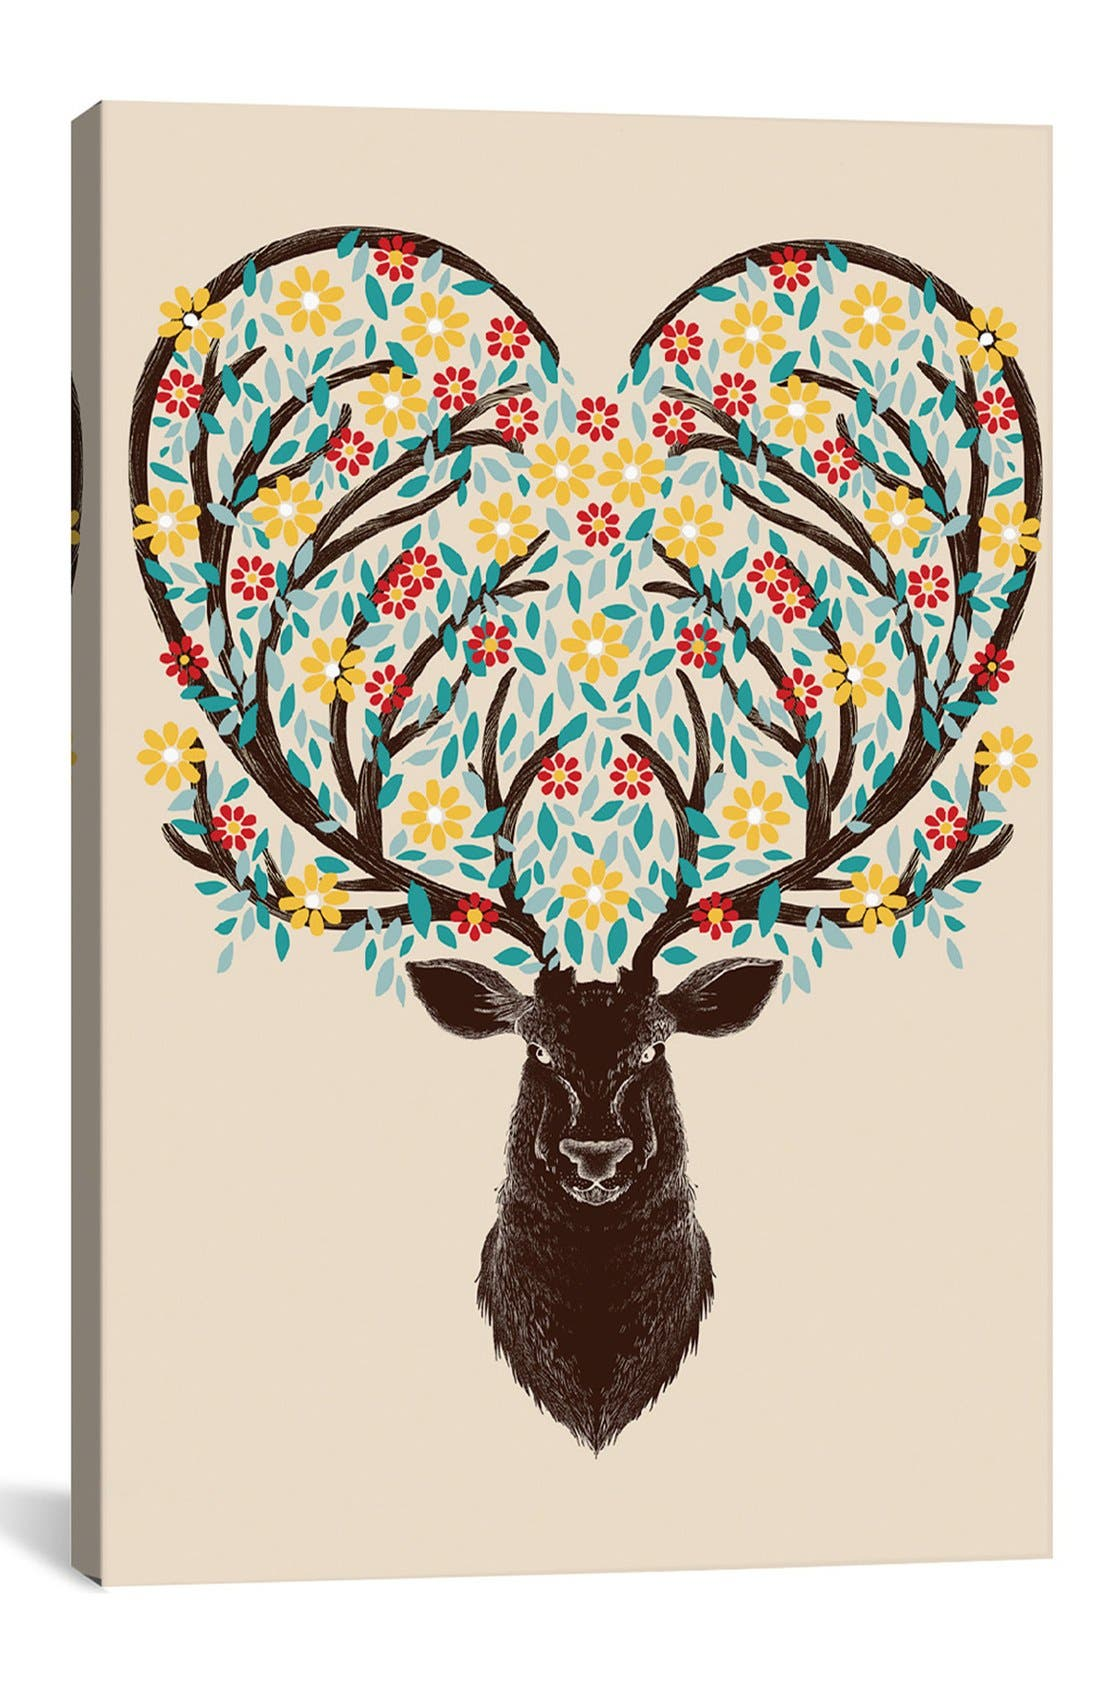 'Blooming Deer' Giclée Print Canvas Art,                             Main thumbnail 1, color,                             Beige